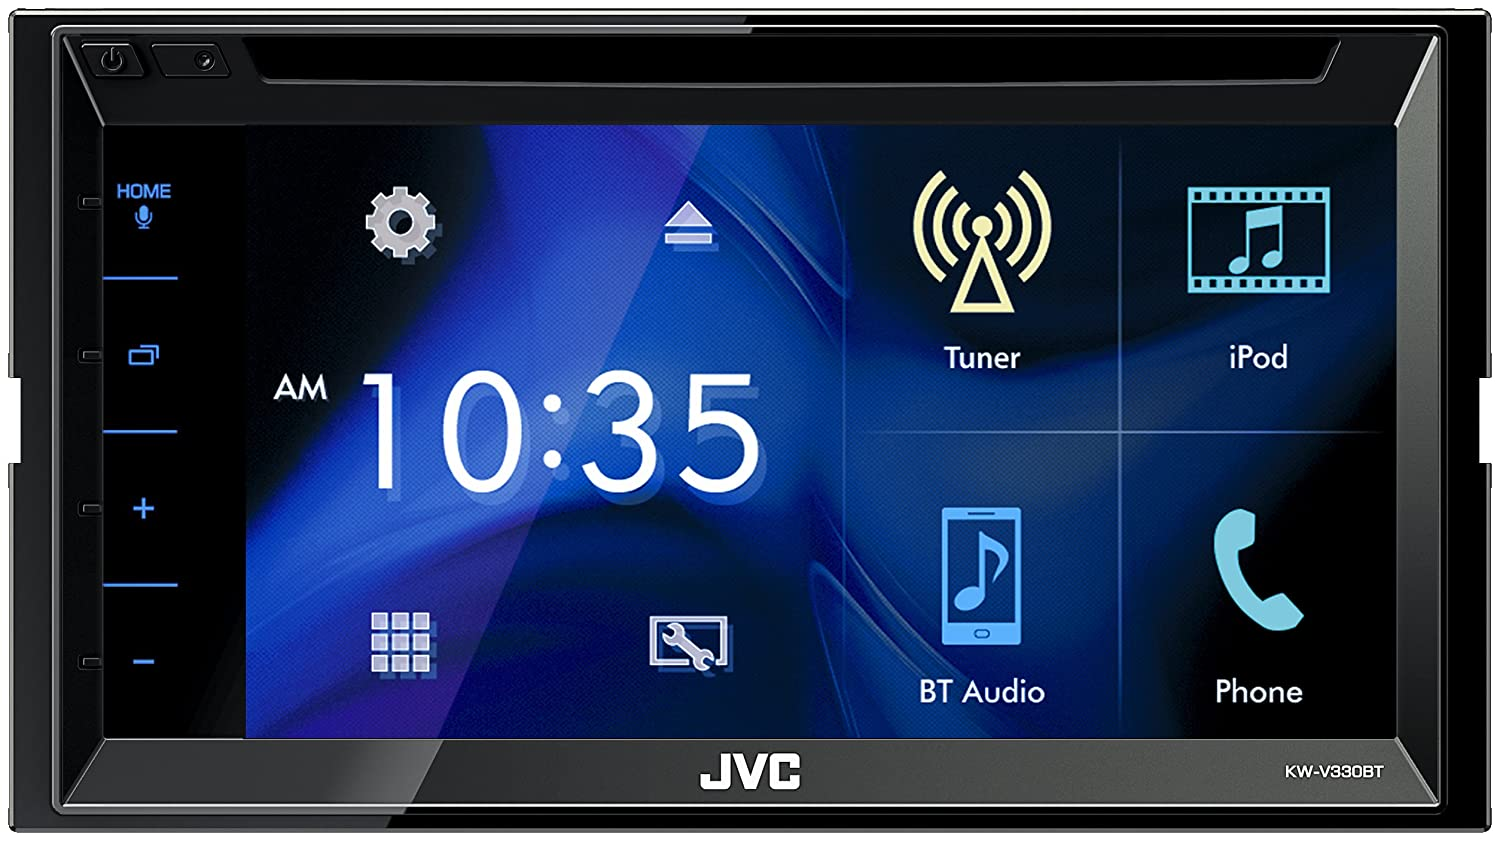 JVC KW-V330BT Multimedia Receiver Featuring 6.8 Clear Resistive Touch Panel//iDataLink Maestro Ready//Bluetooth //13-Band EQ